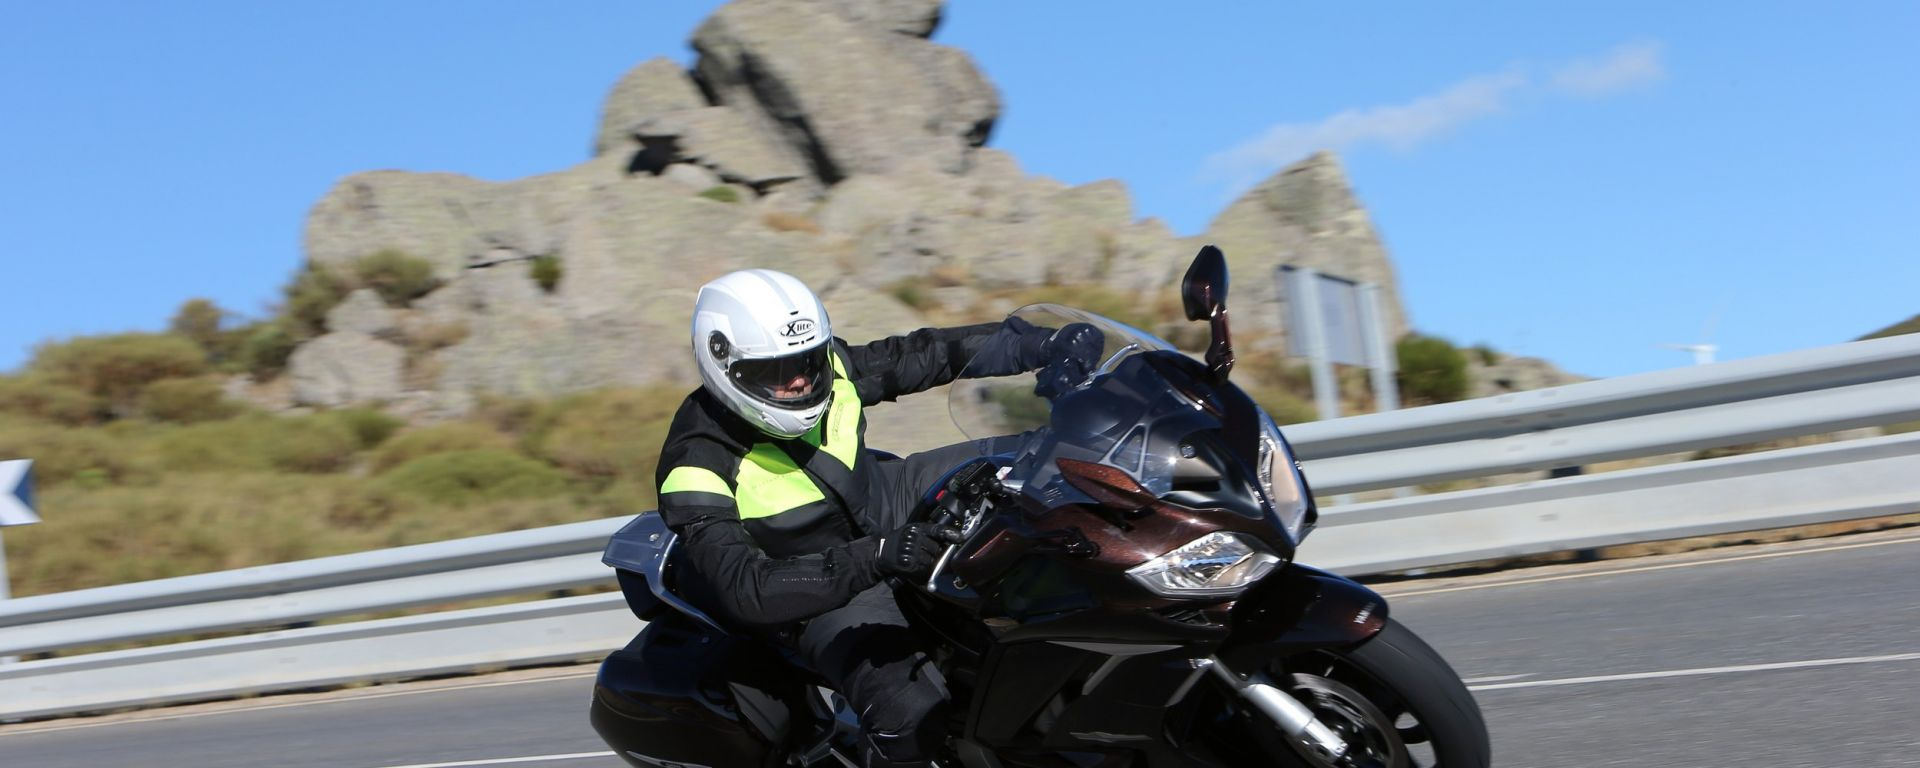 Yamaha FJR 1300 2013, ora anche in video